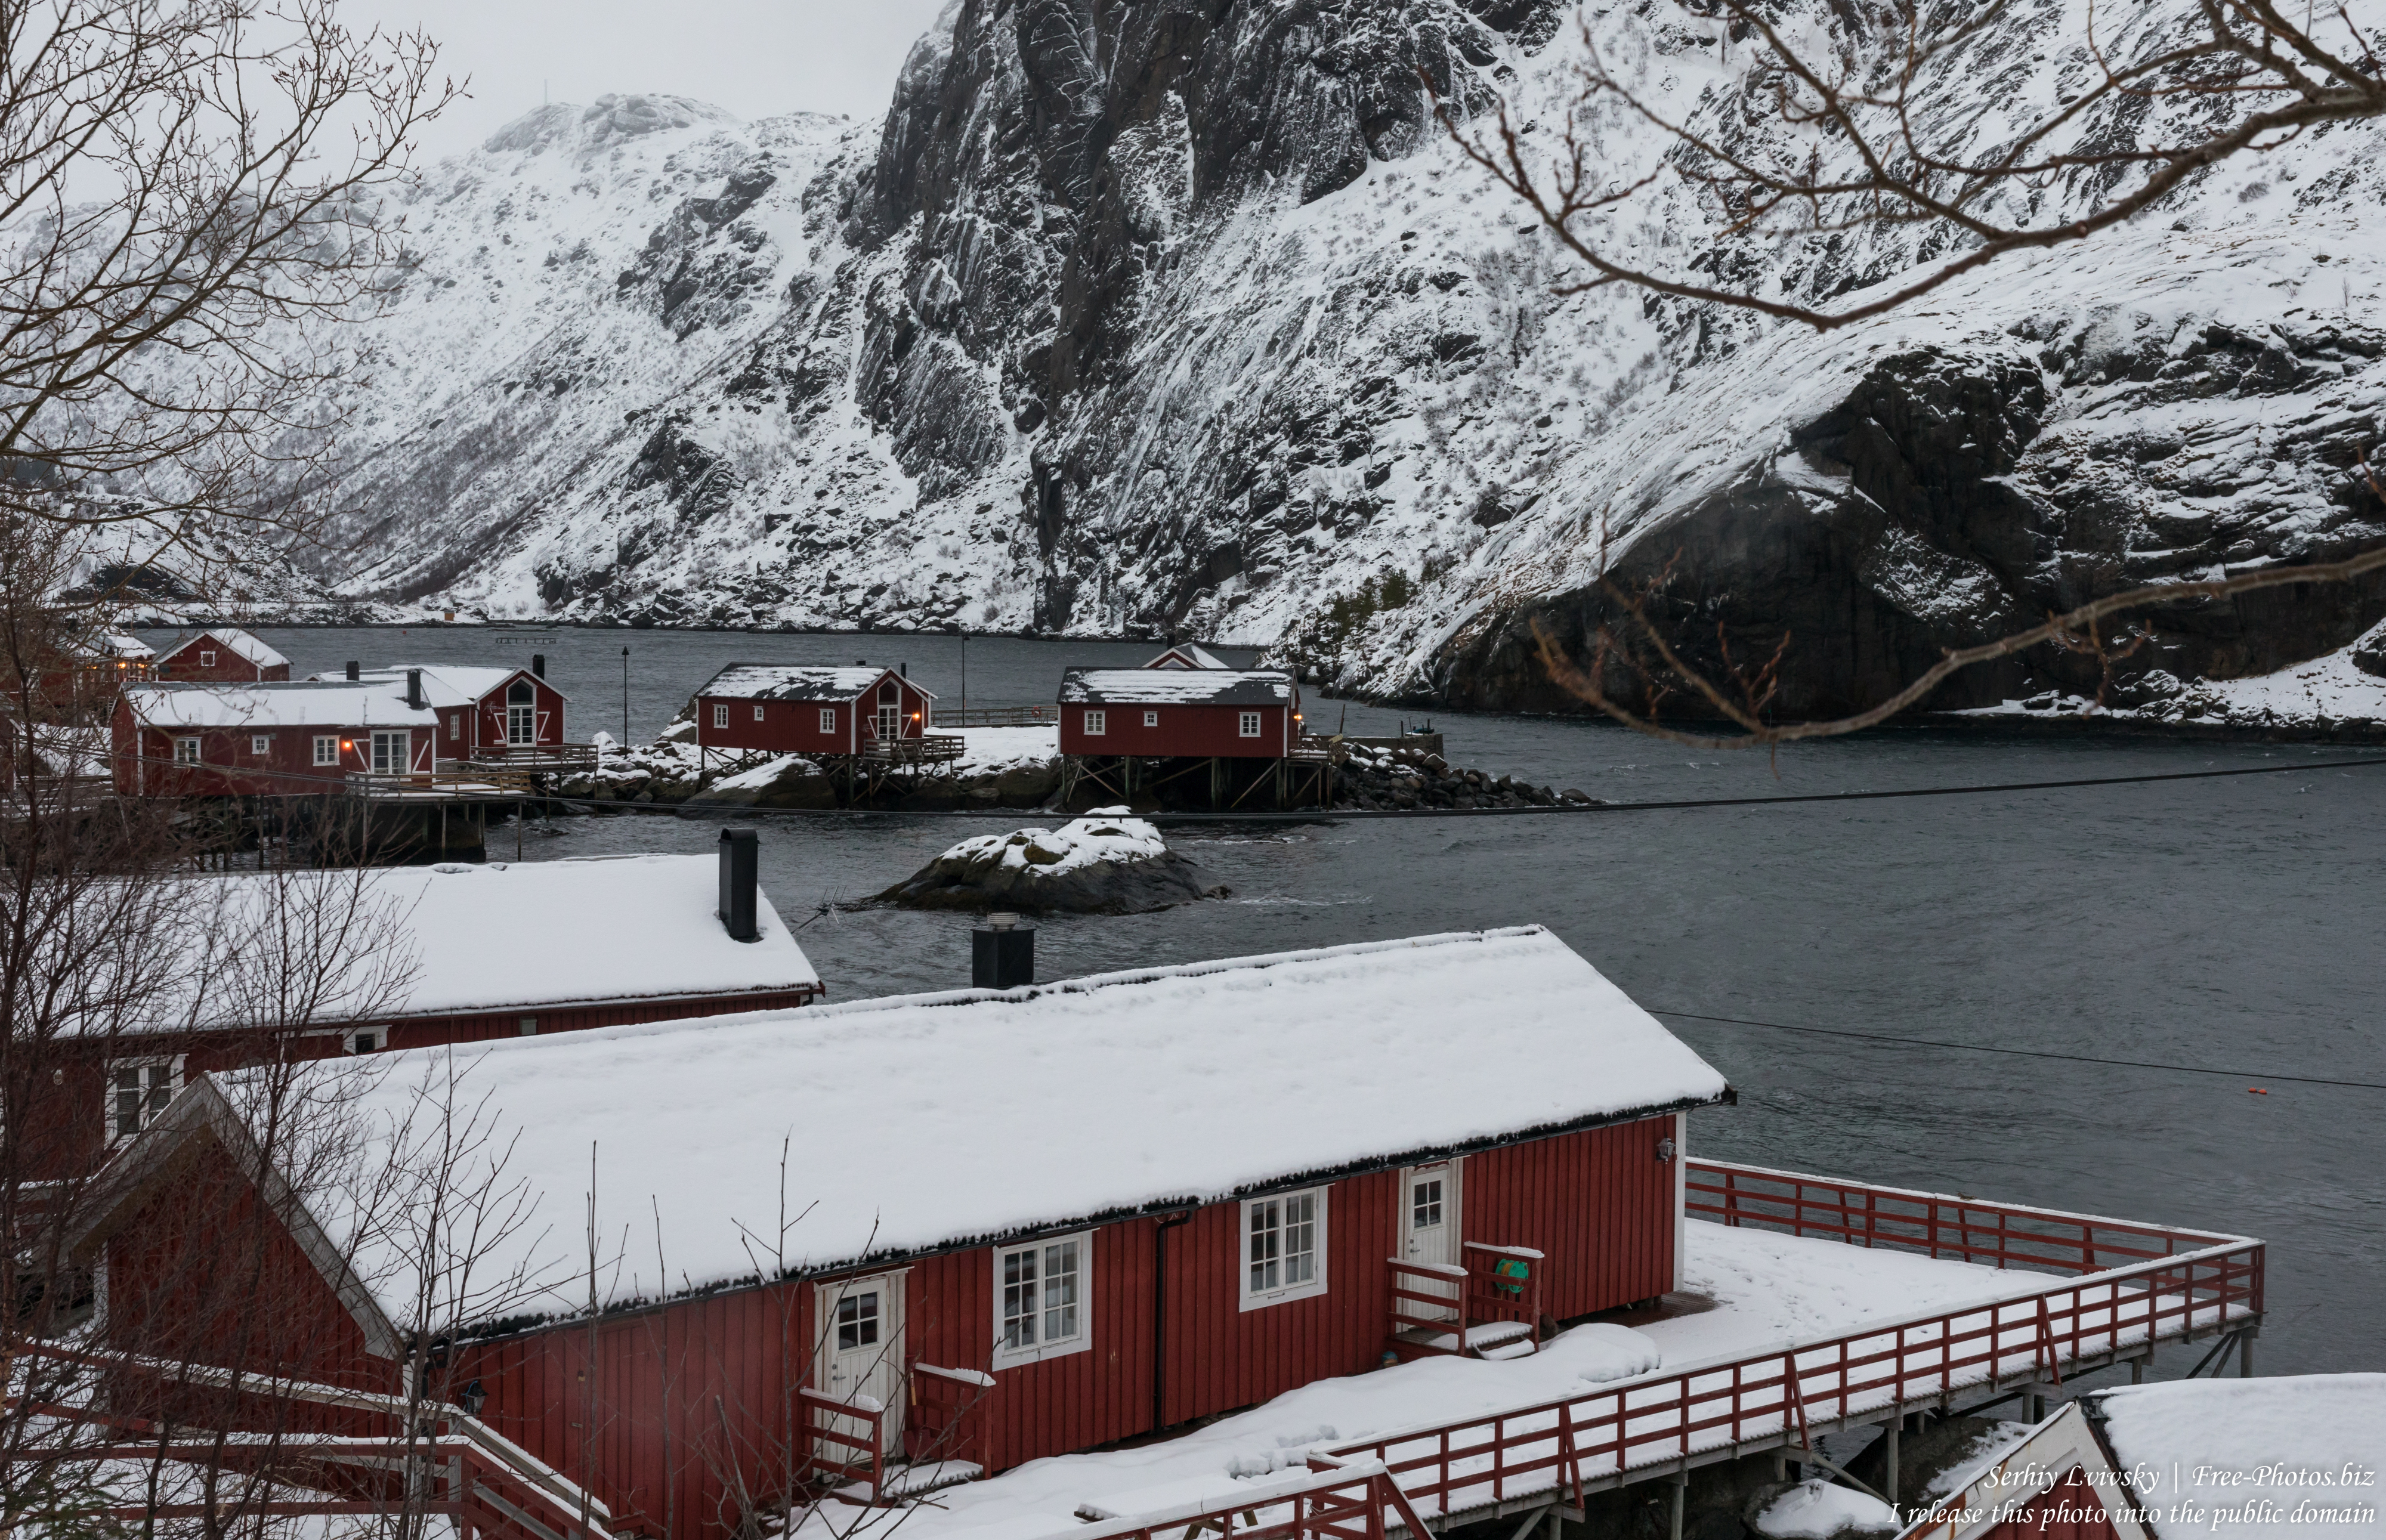 nusfjord_norway_in_february_2020_by_serhiy_lvivsky_03